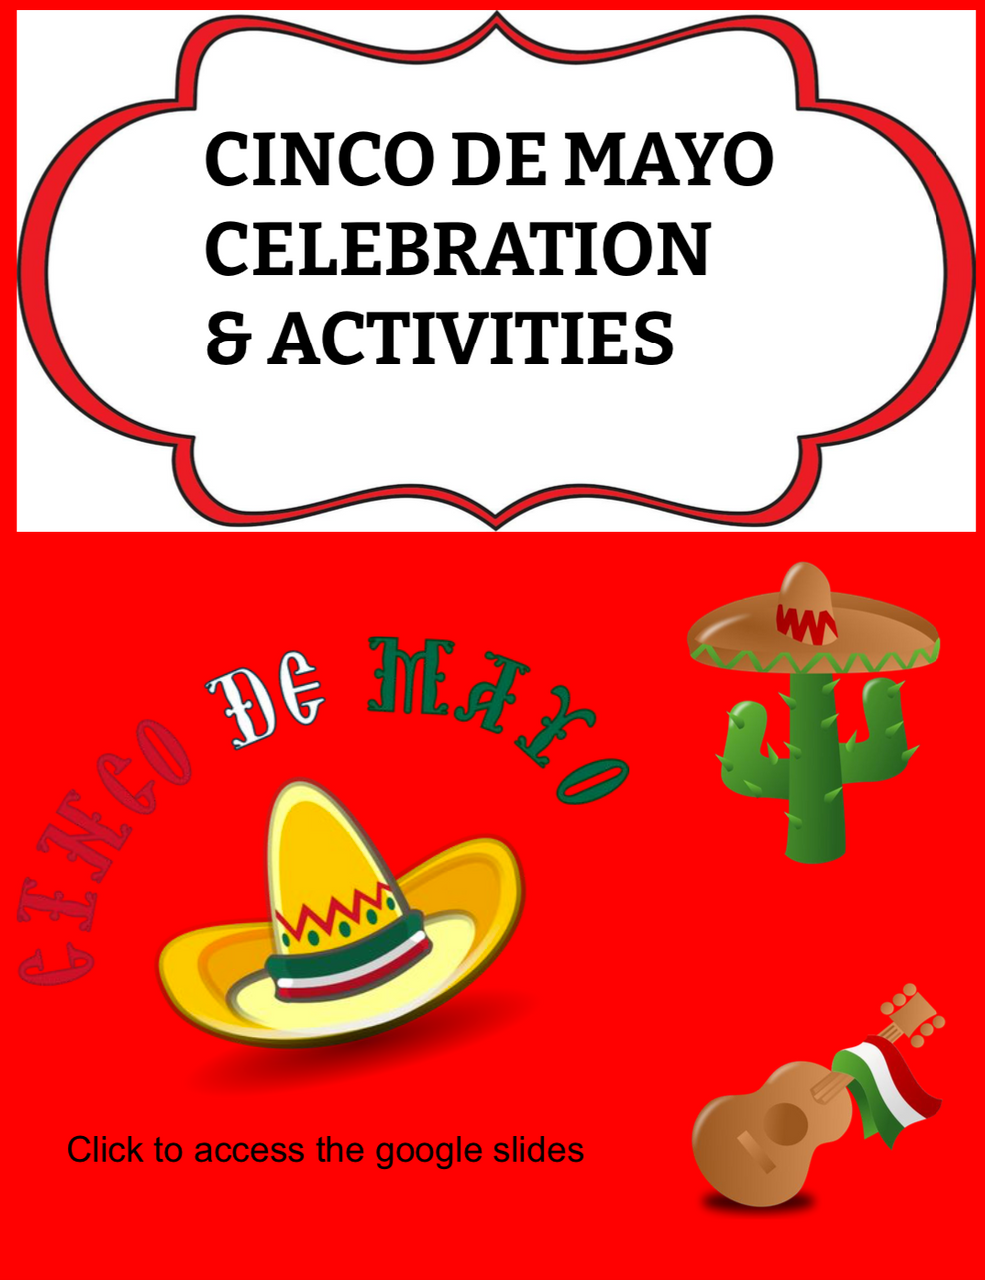 Cinco de Mayo Celebrations & Activities - Reading and Fun Activities to Share with your Class during Cinco de Mayo